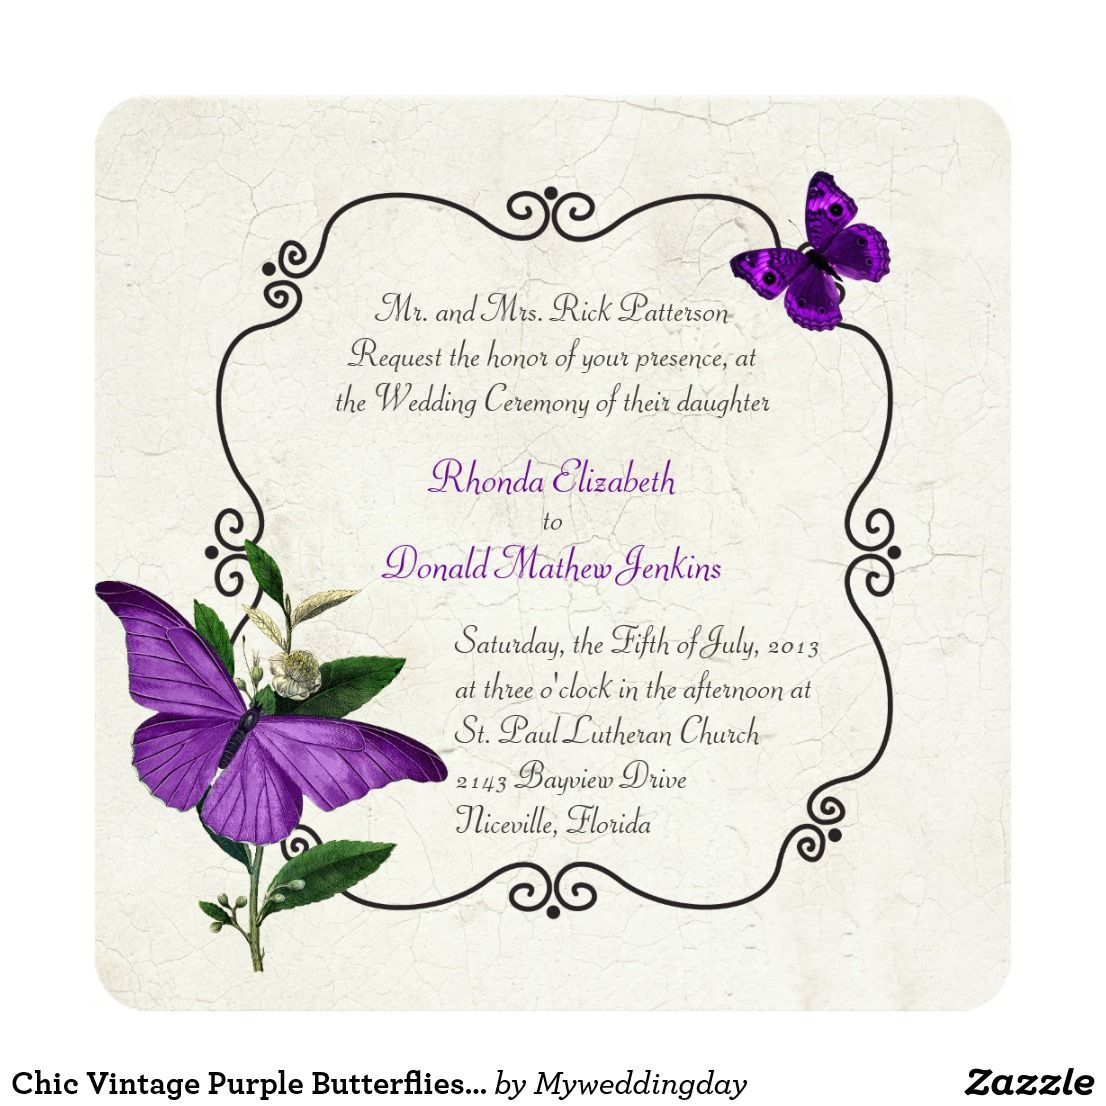 Chic Vintage Purple Butterflies Wedding Invitation | Vintage Wedding ...